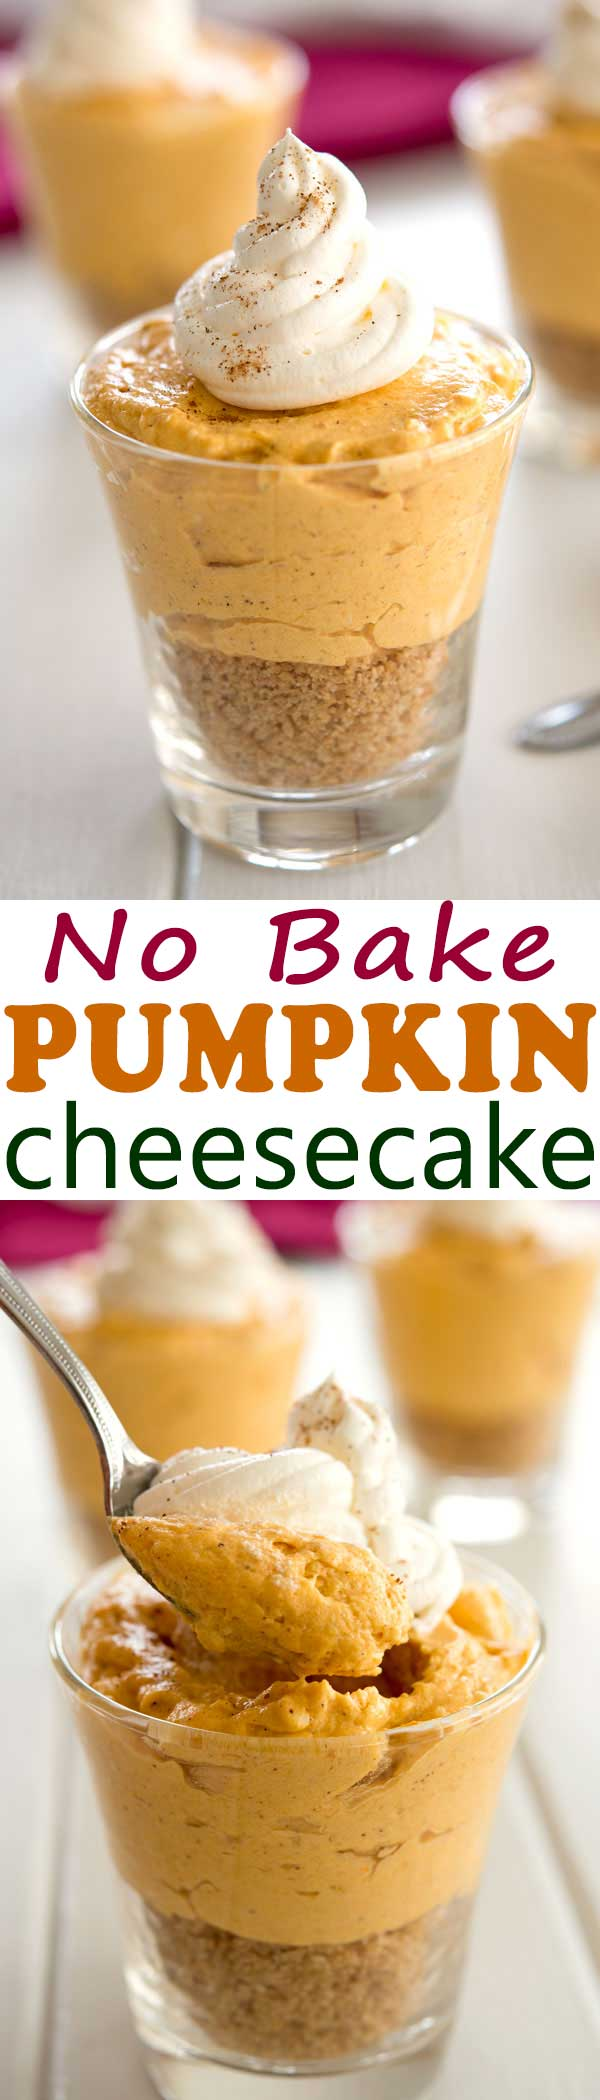 Easy no bake pumpkin cheesecake served in a jar or mini cups for a cute Thanksgiving or Fall dessert recipe! #dessert #thanksgiving #pumpkin